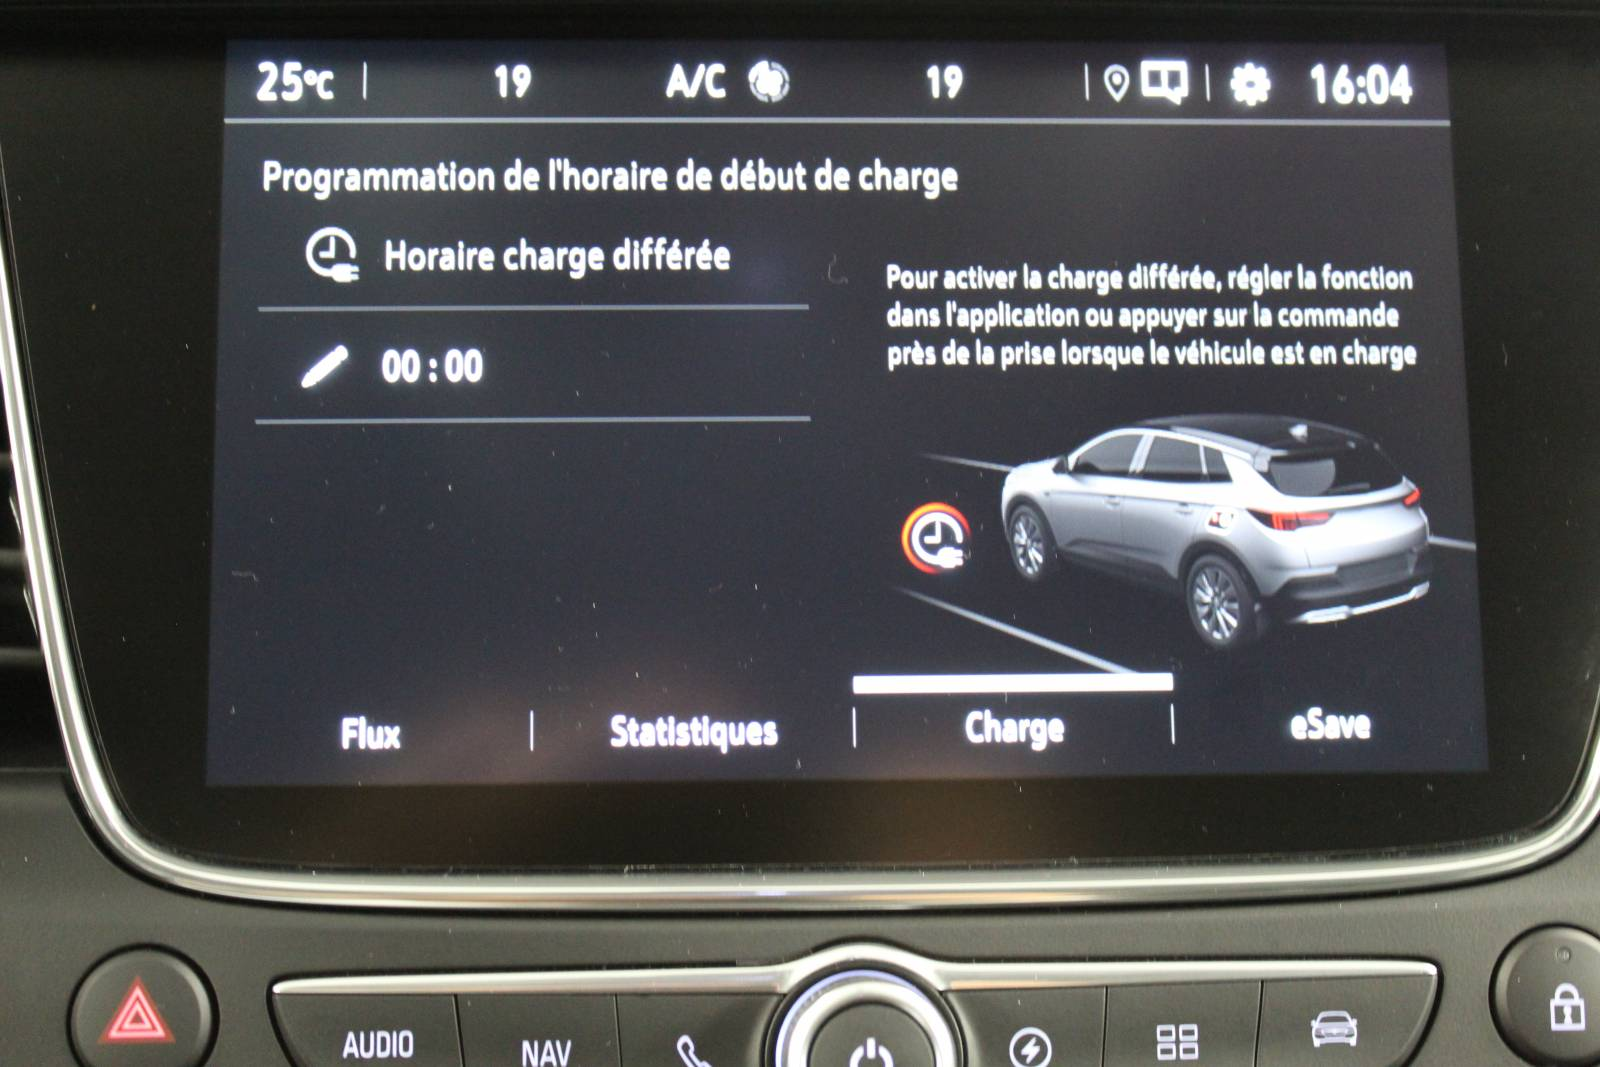 OPEL Grandland X Hybrid4 300 ch AWD BVA8 - véhicule d'occasion - Site Internet Faurie - Opel - Faurie Motor Charente Angouleme - 16160 - Gond-Pontouvre - 23